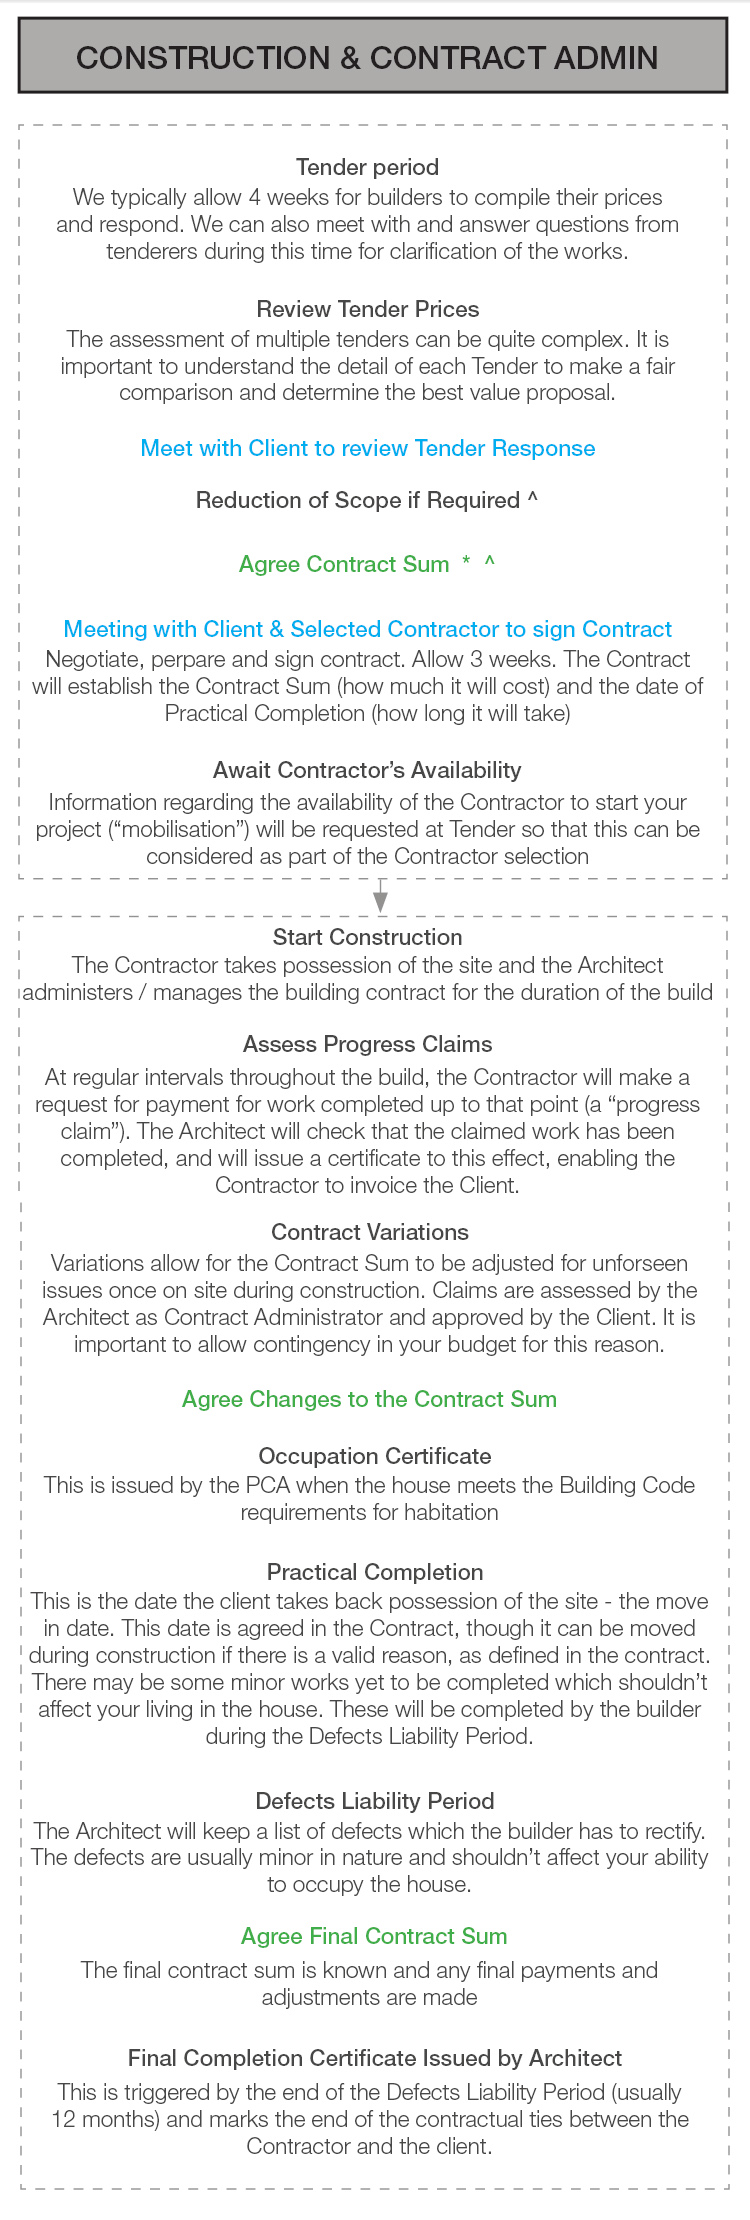 04 Construction Contract Admin.jpg